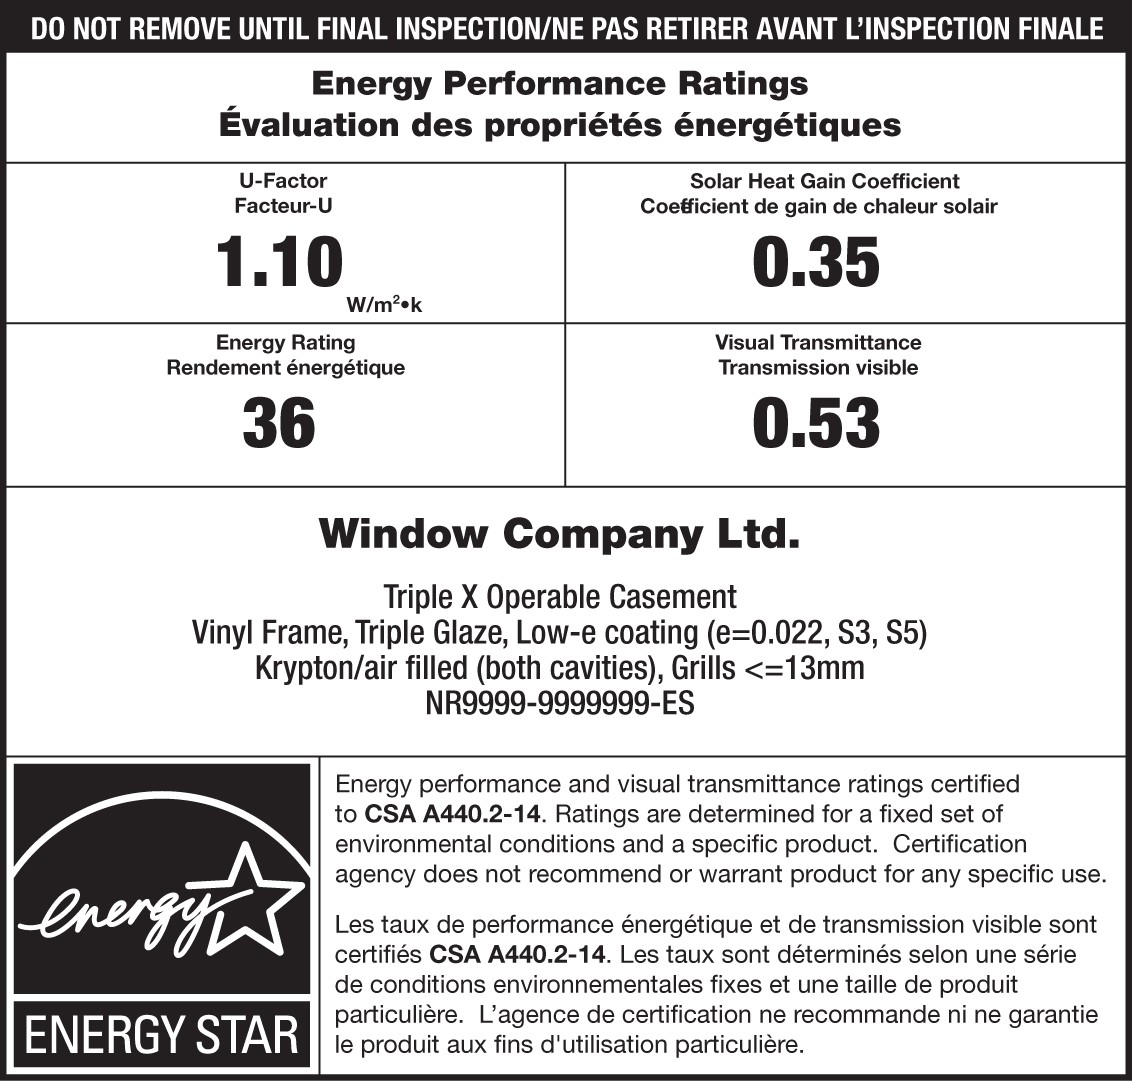 Sample ENERGY STAR / NRCan temporary label for a window. The ENERGY STAR portion has an ENERGY STAR certification mark indicating that the product is certified and the product's specific performance ratings, brand name and model description.